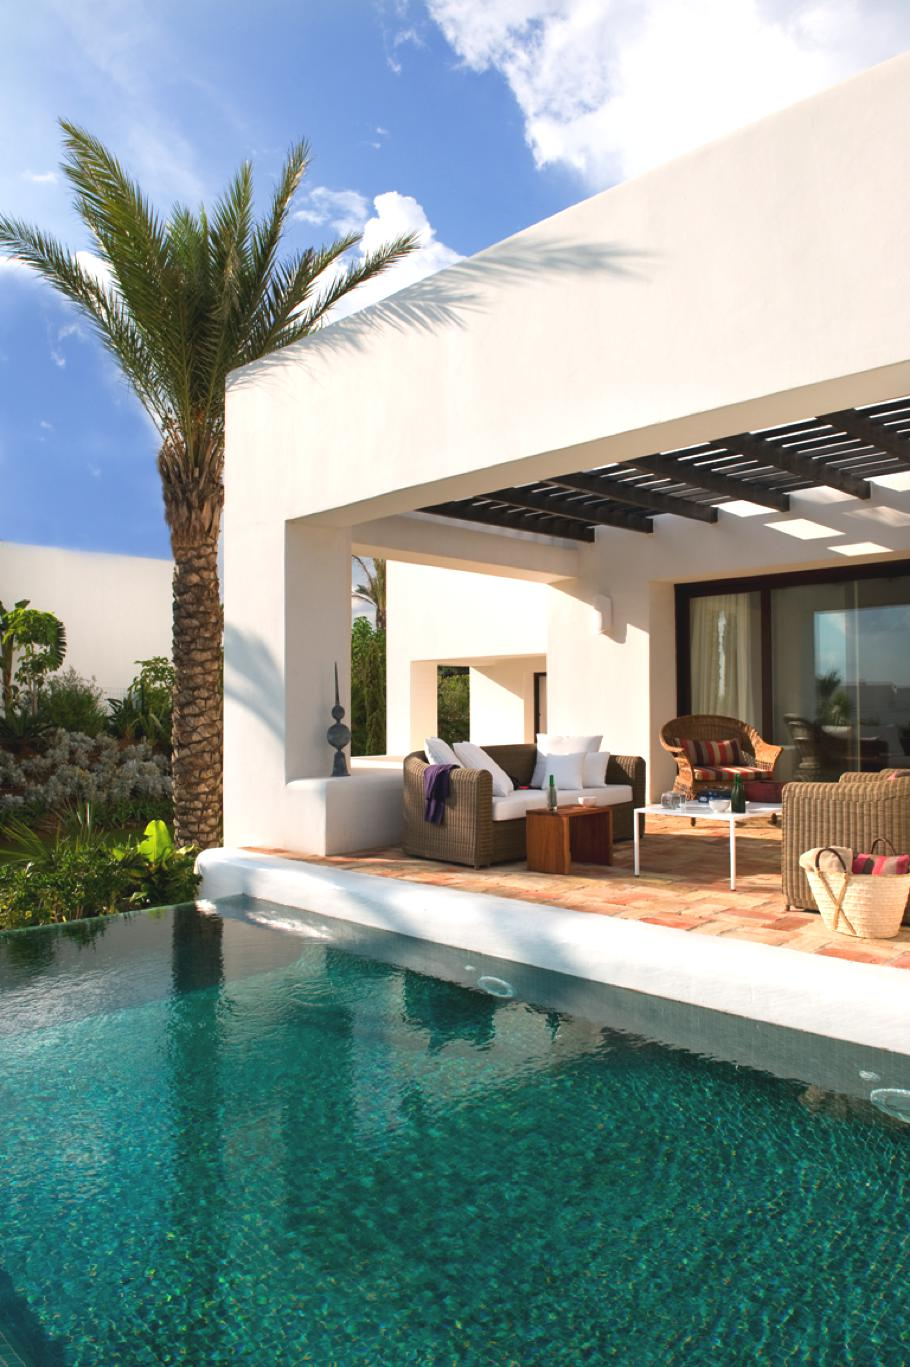 Andaluc an grandeur at the finca cortesin hotel golf and for Design hotels spain